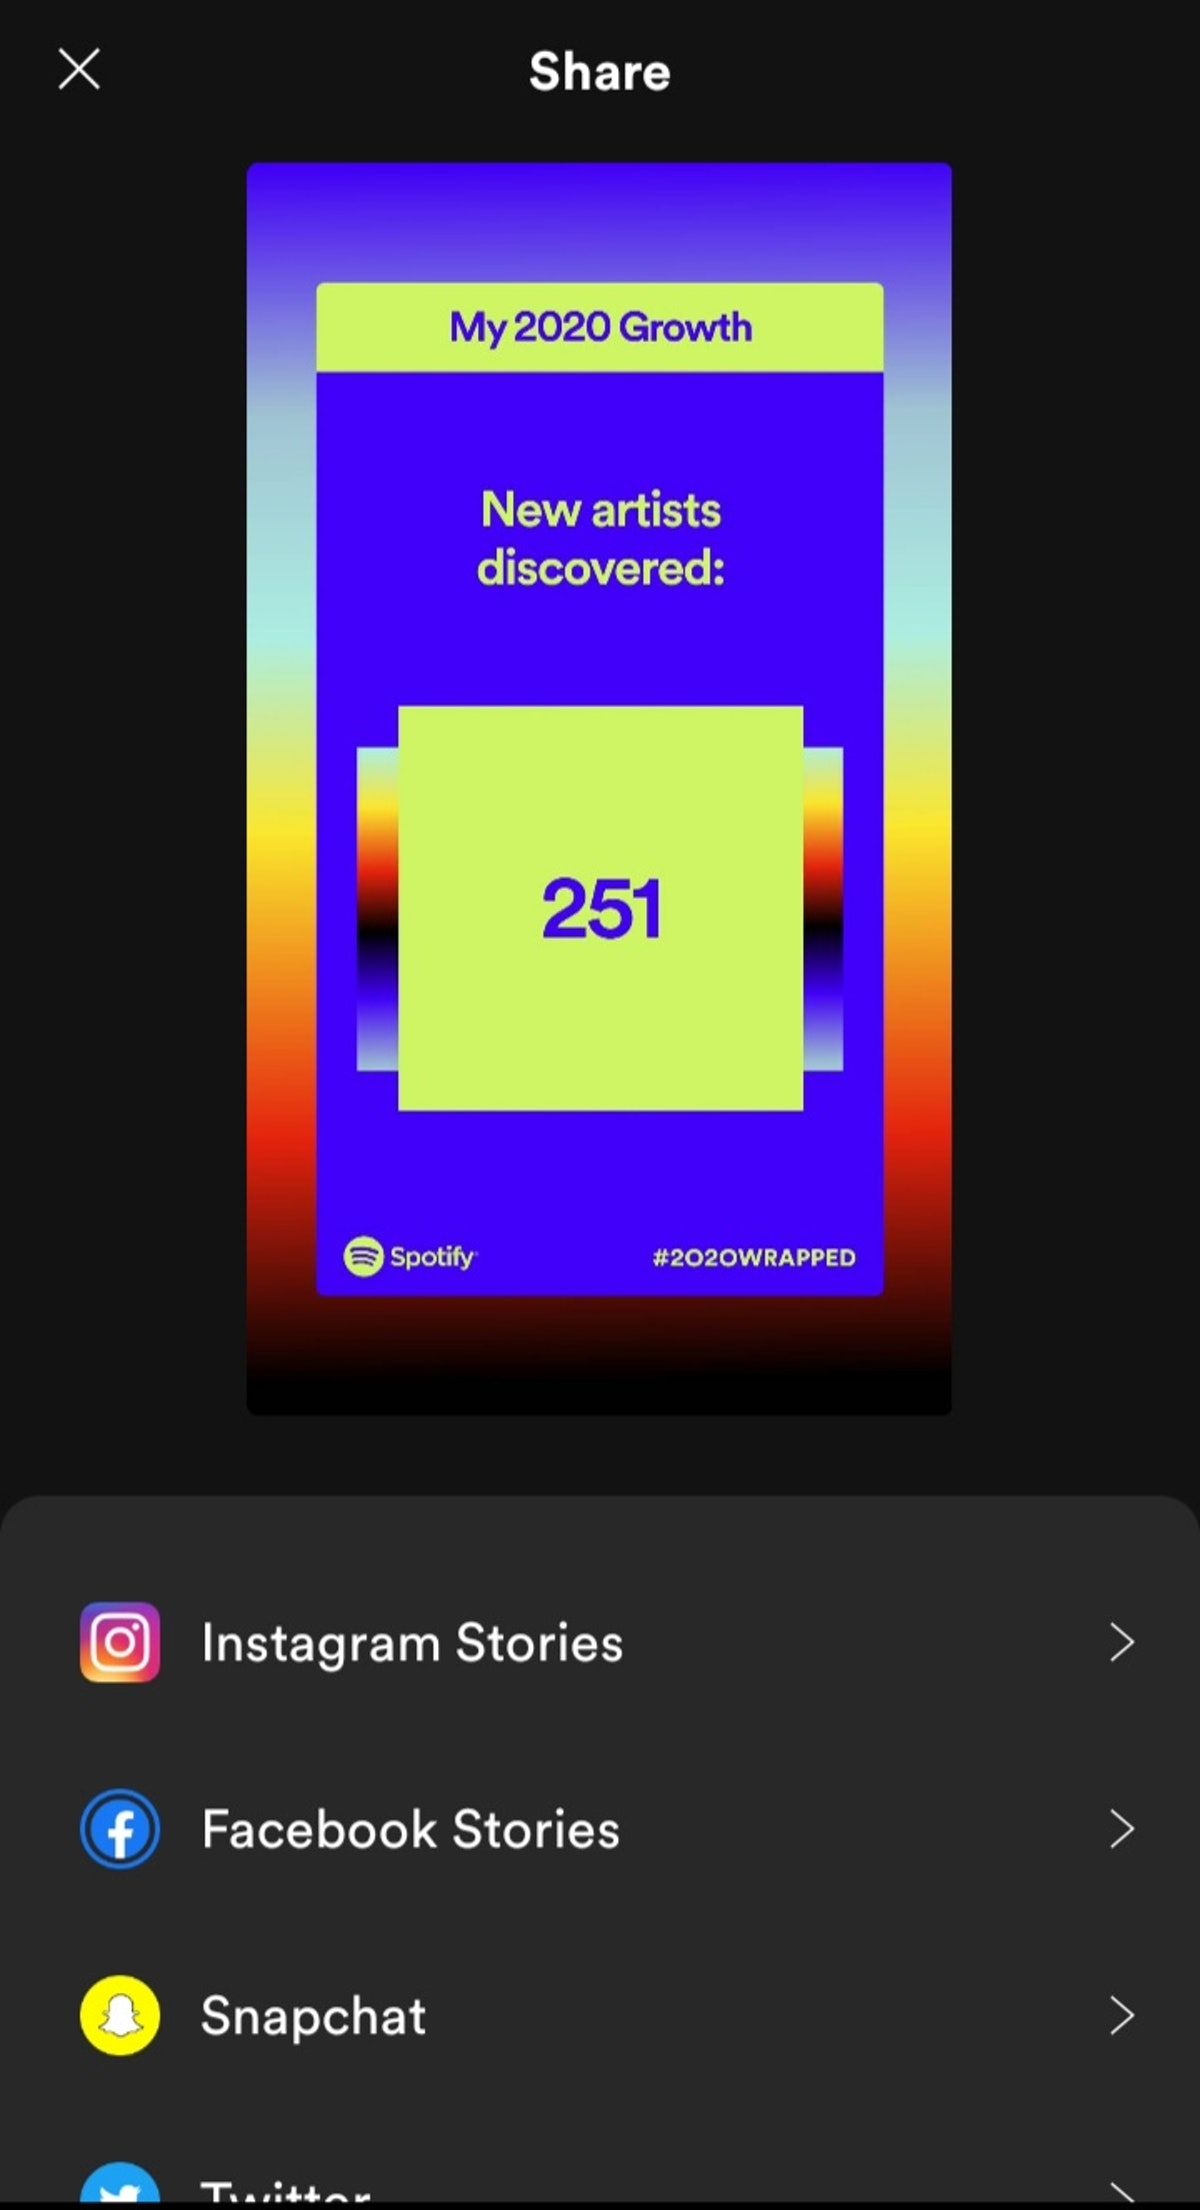 Here's how to share your Spotify 2020 Wrapped results with your friends.